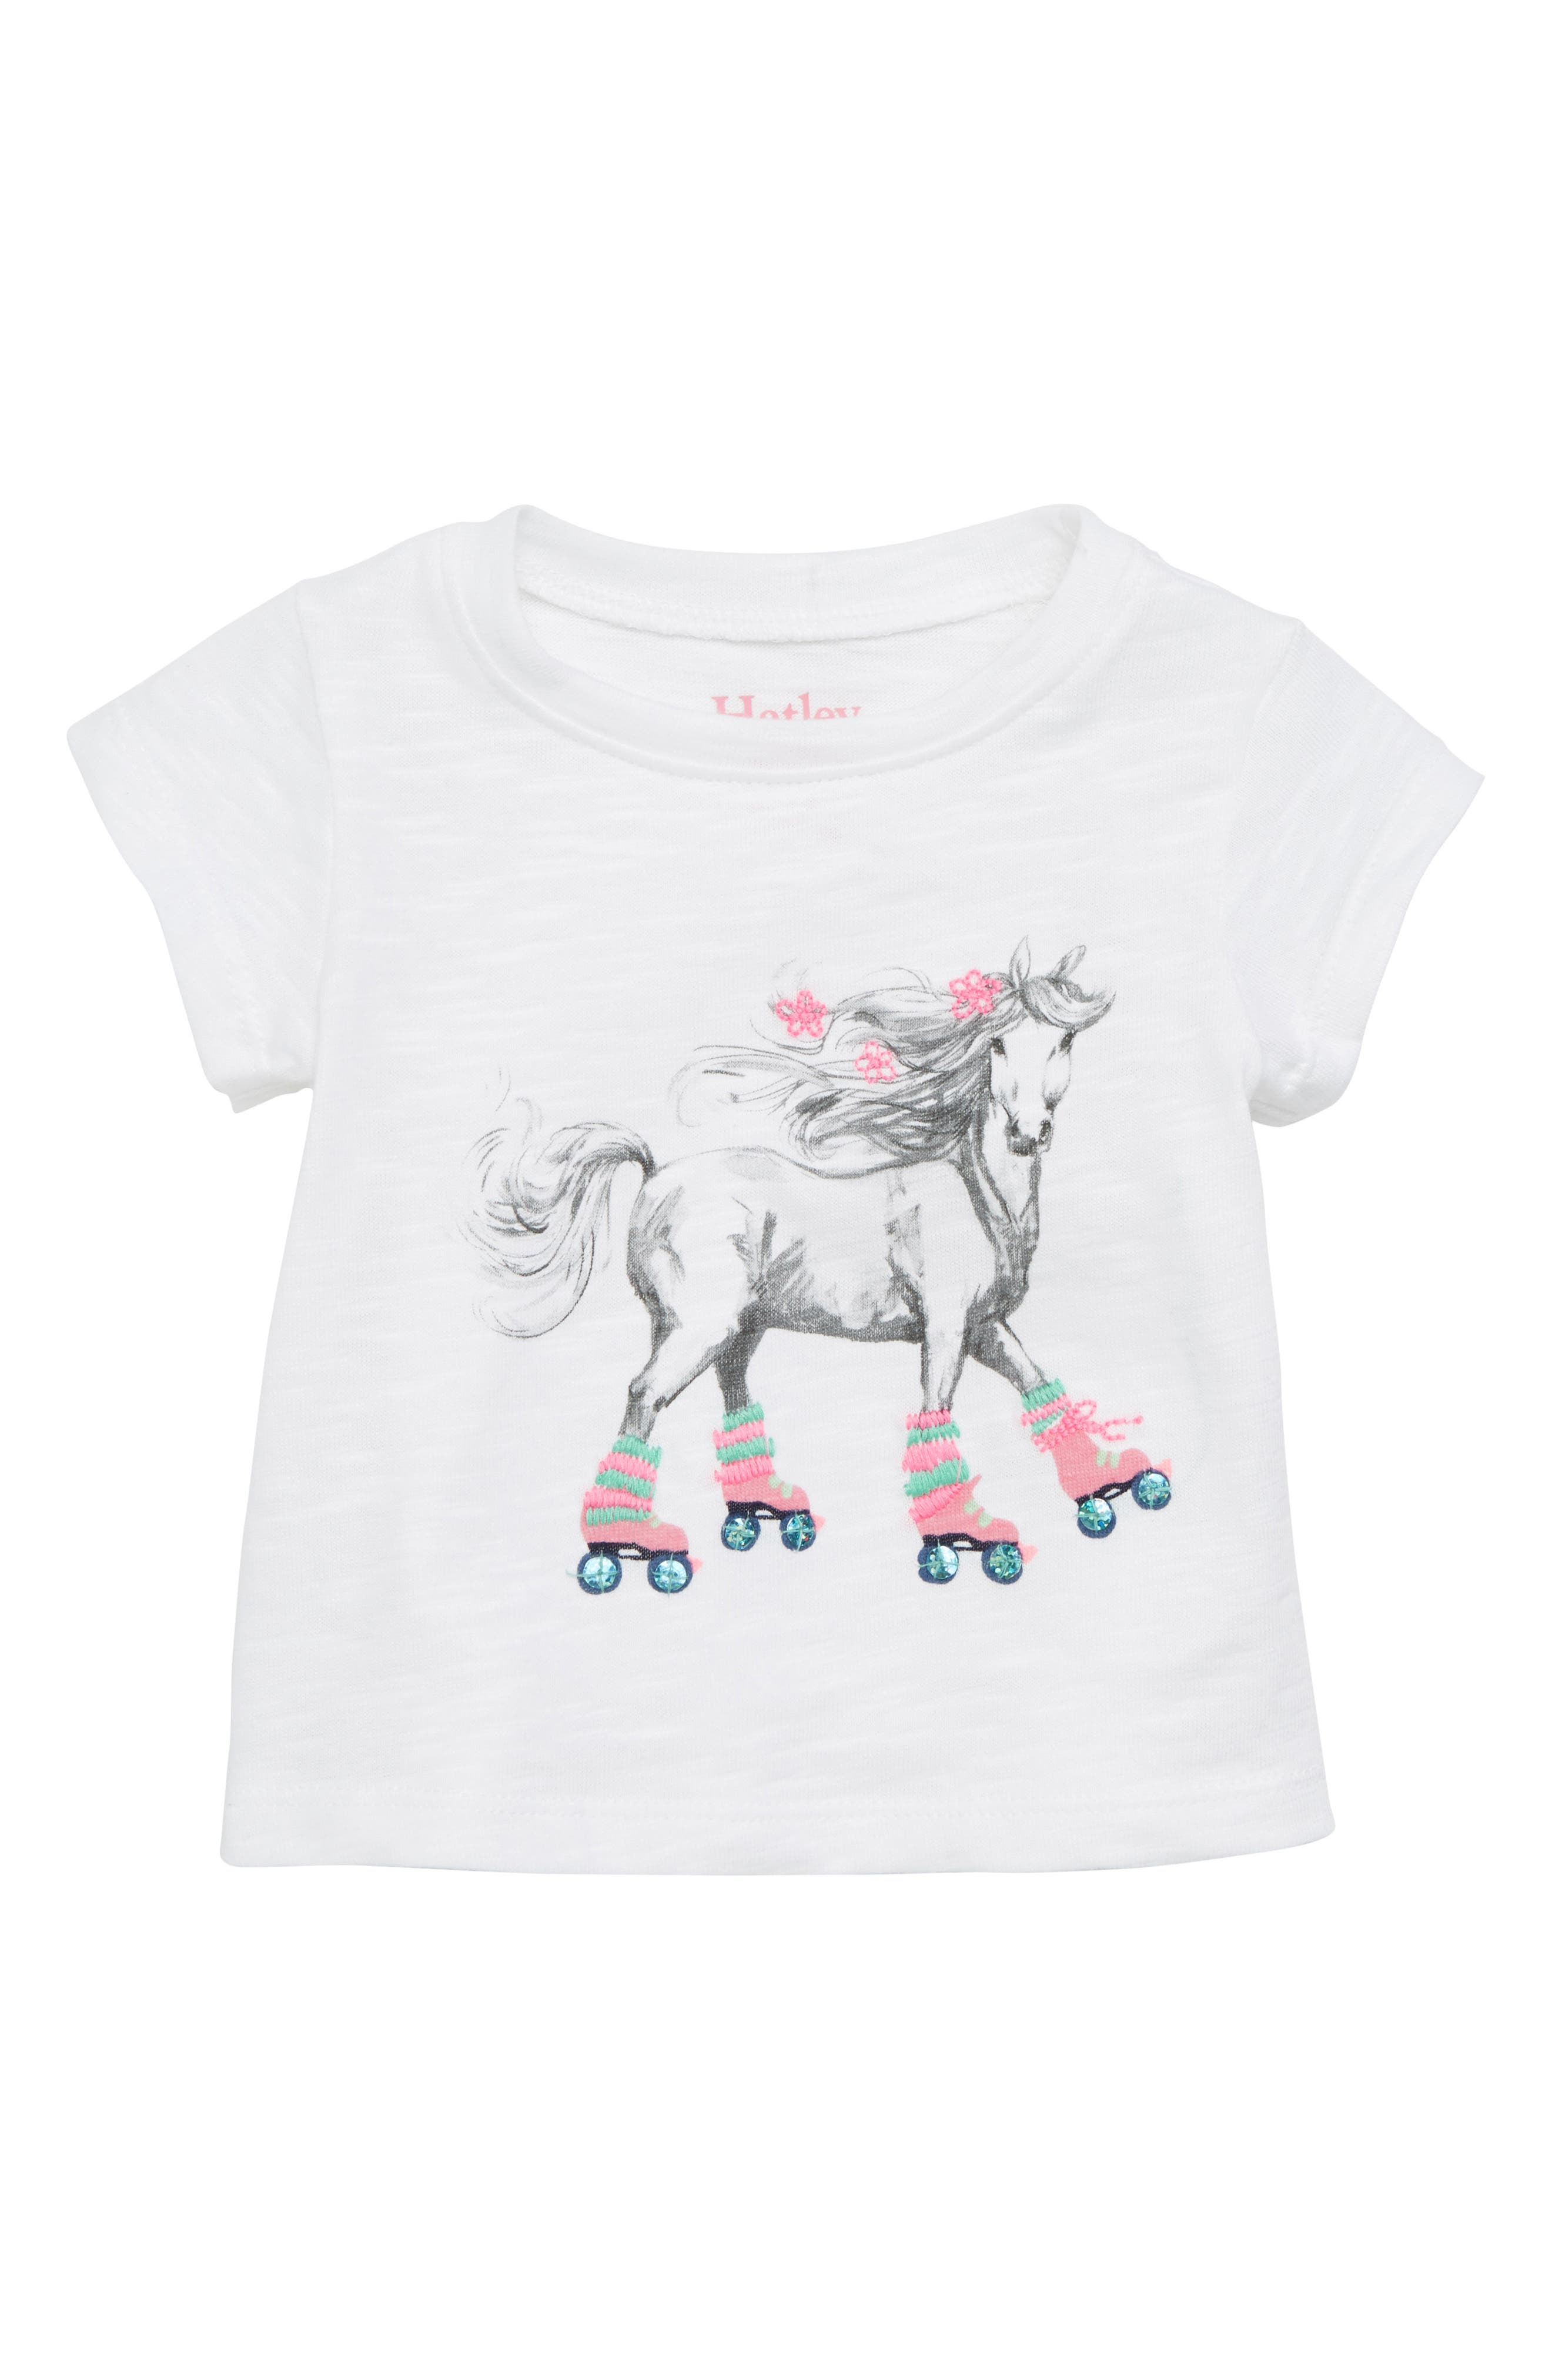 Roller Skating Horse Graphic Tee,                         Main,                         color, Roller Skating Horse